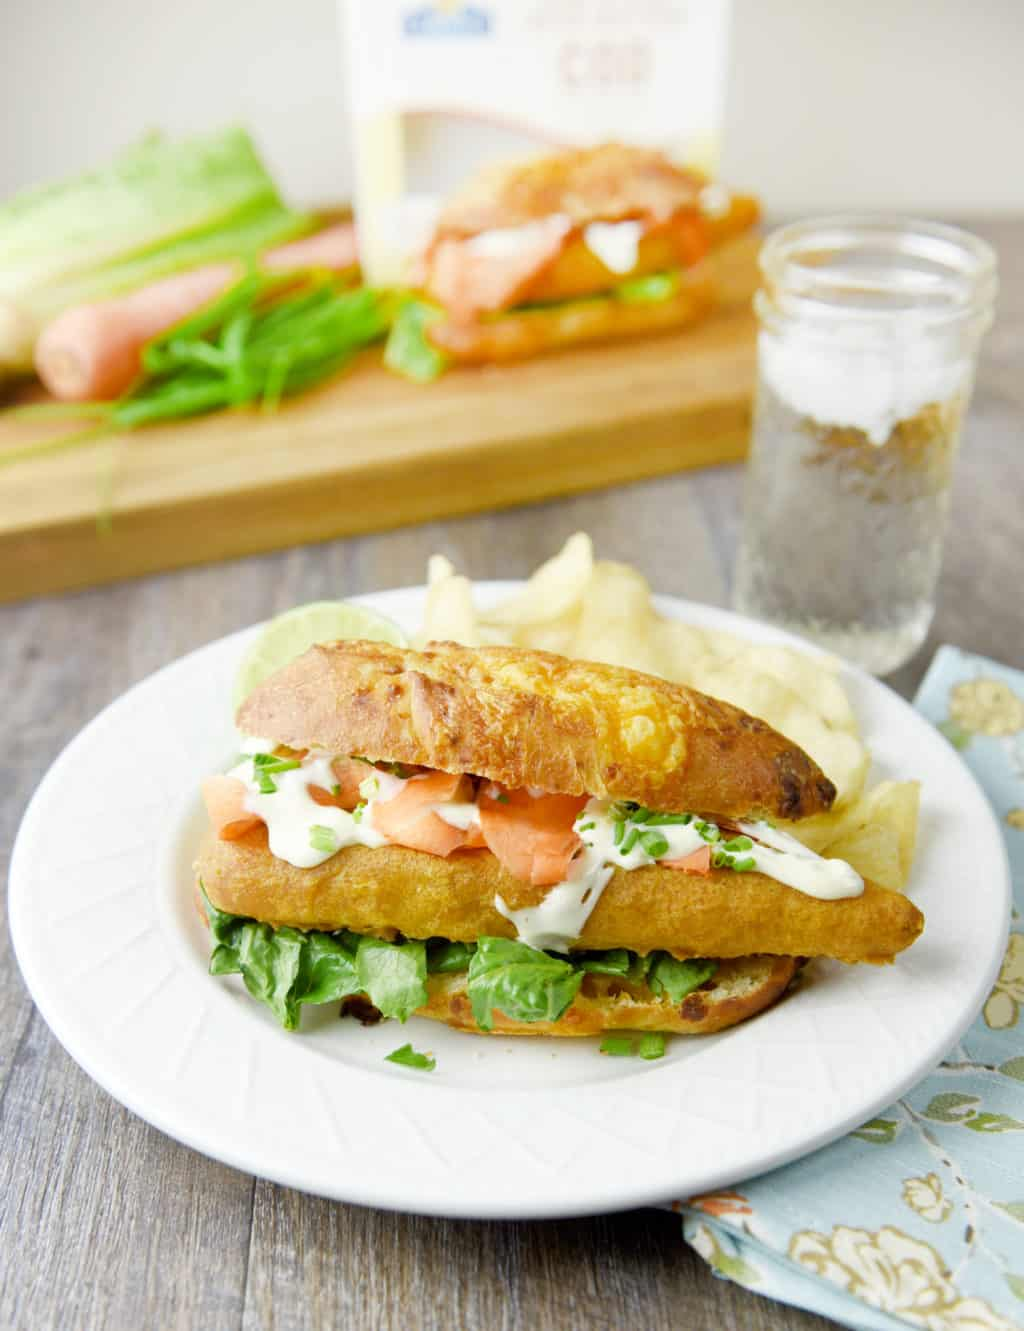 Pub-Style Beer Battered Cod Sandwich with Garlic Lime Sauce!! Delicious lunch or dinner idea